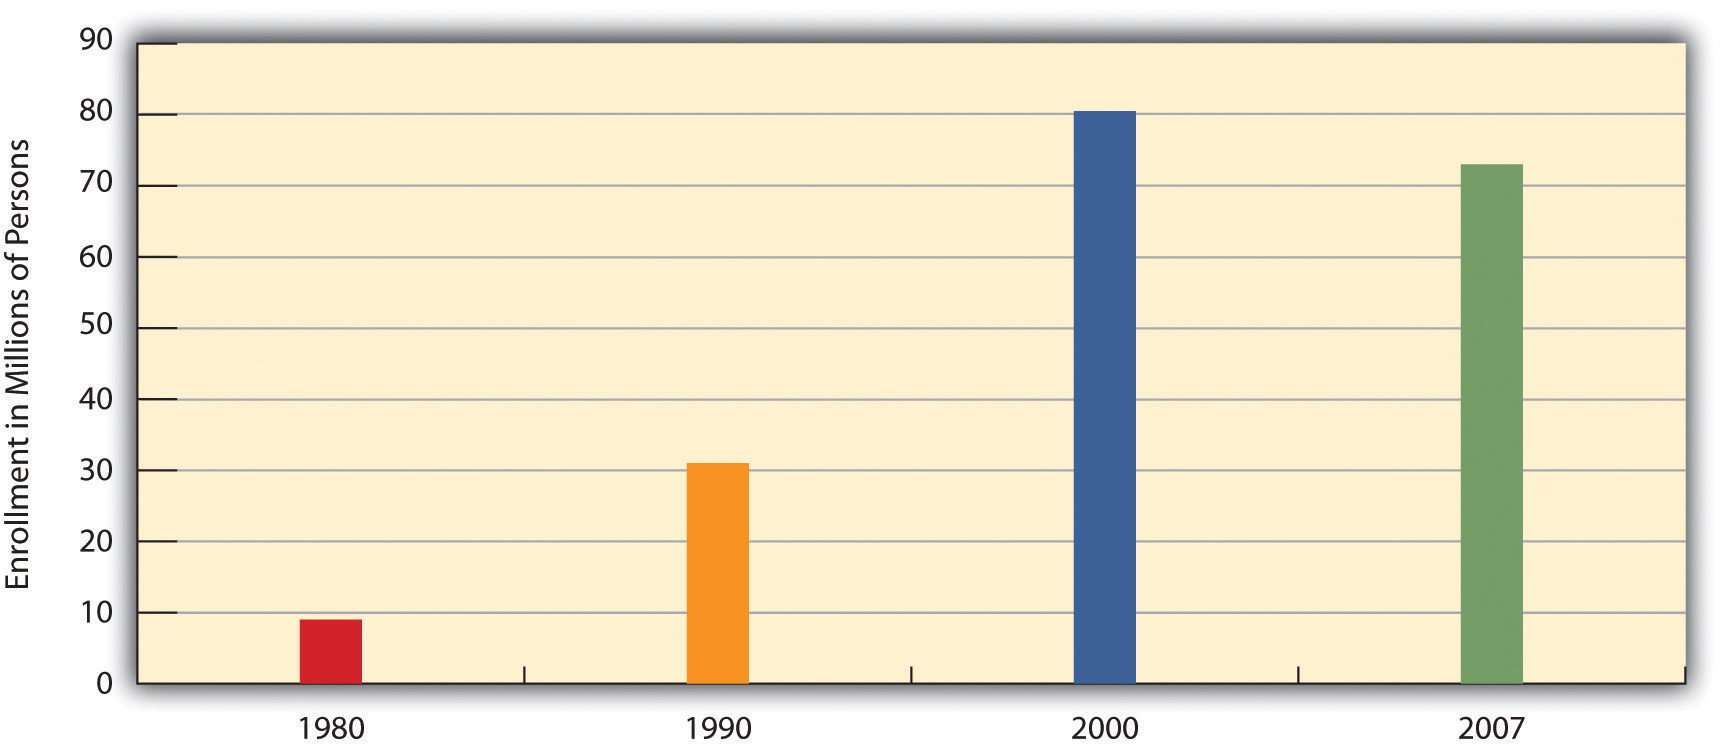 Growth of Health Maintenance Organizations (HMOs), 1980-2007 (Millions of Enrollees)